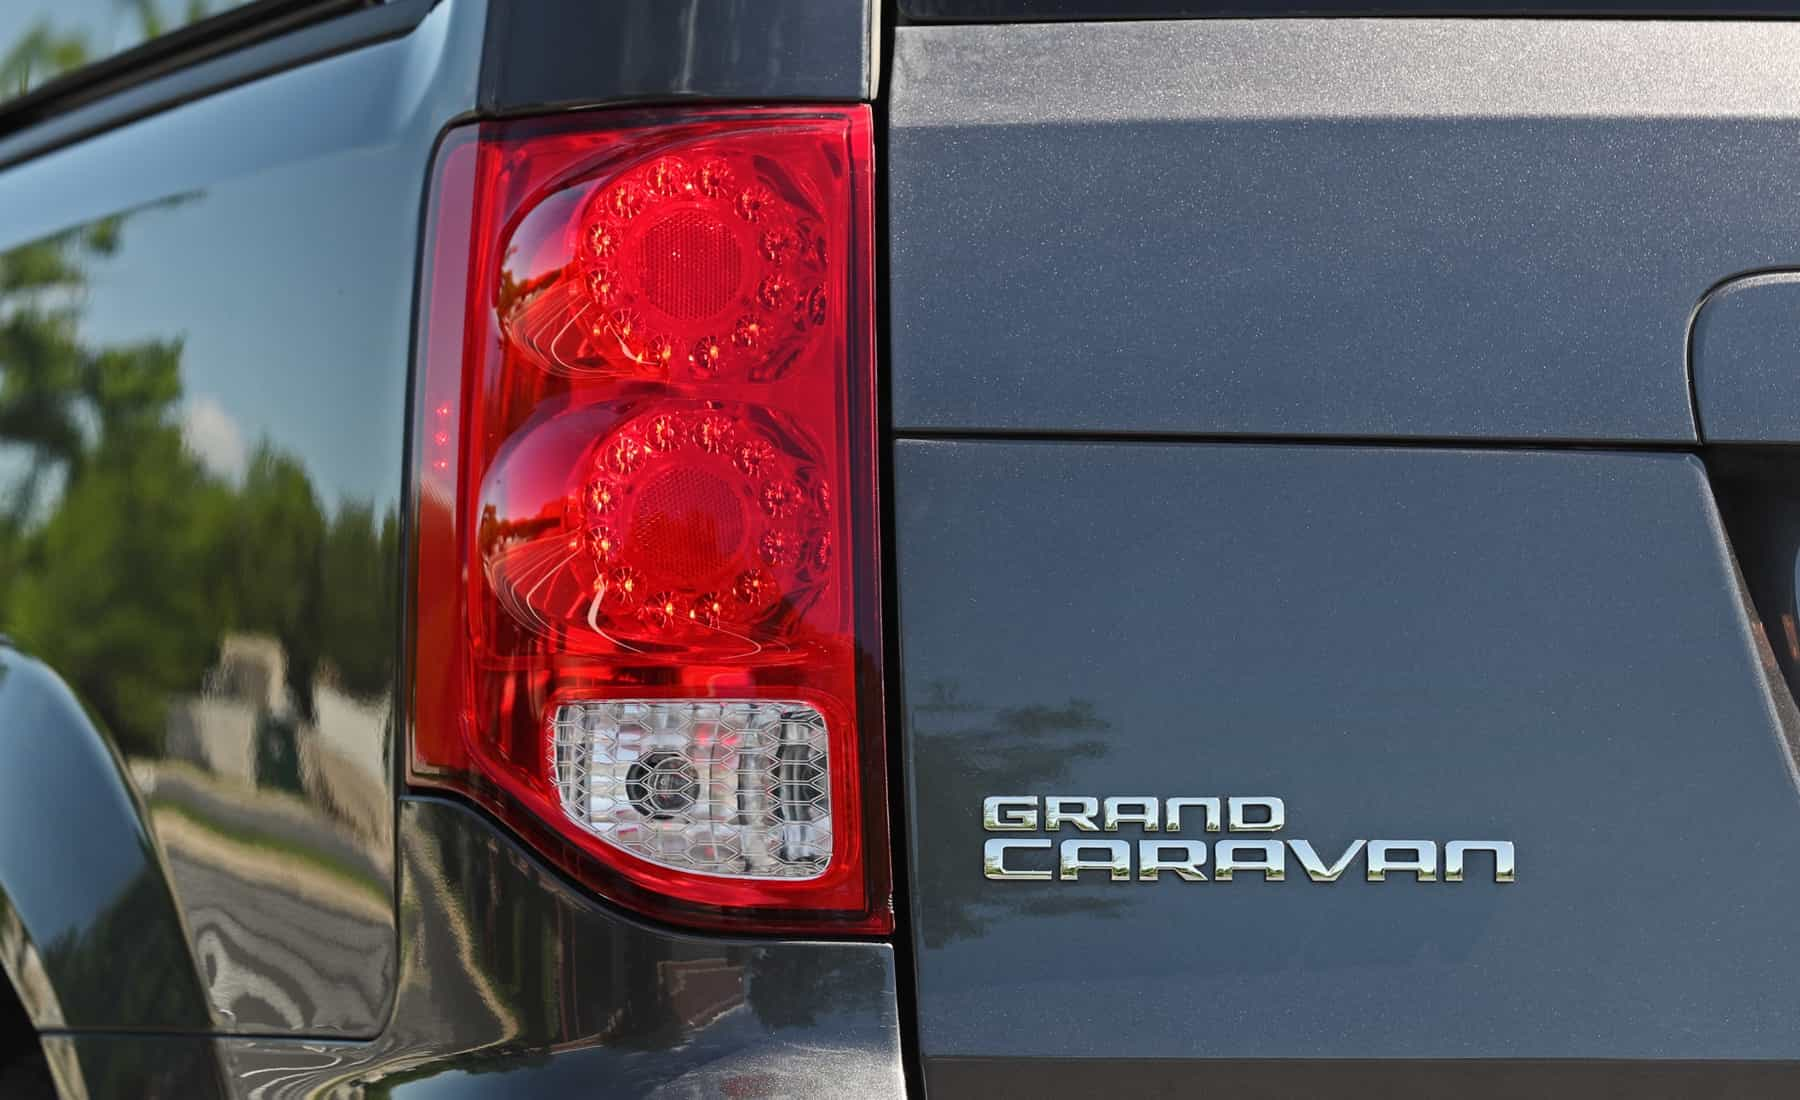 2017 Dodge Grand Caravan Exterior View Taillight (Photo 16 of 47)